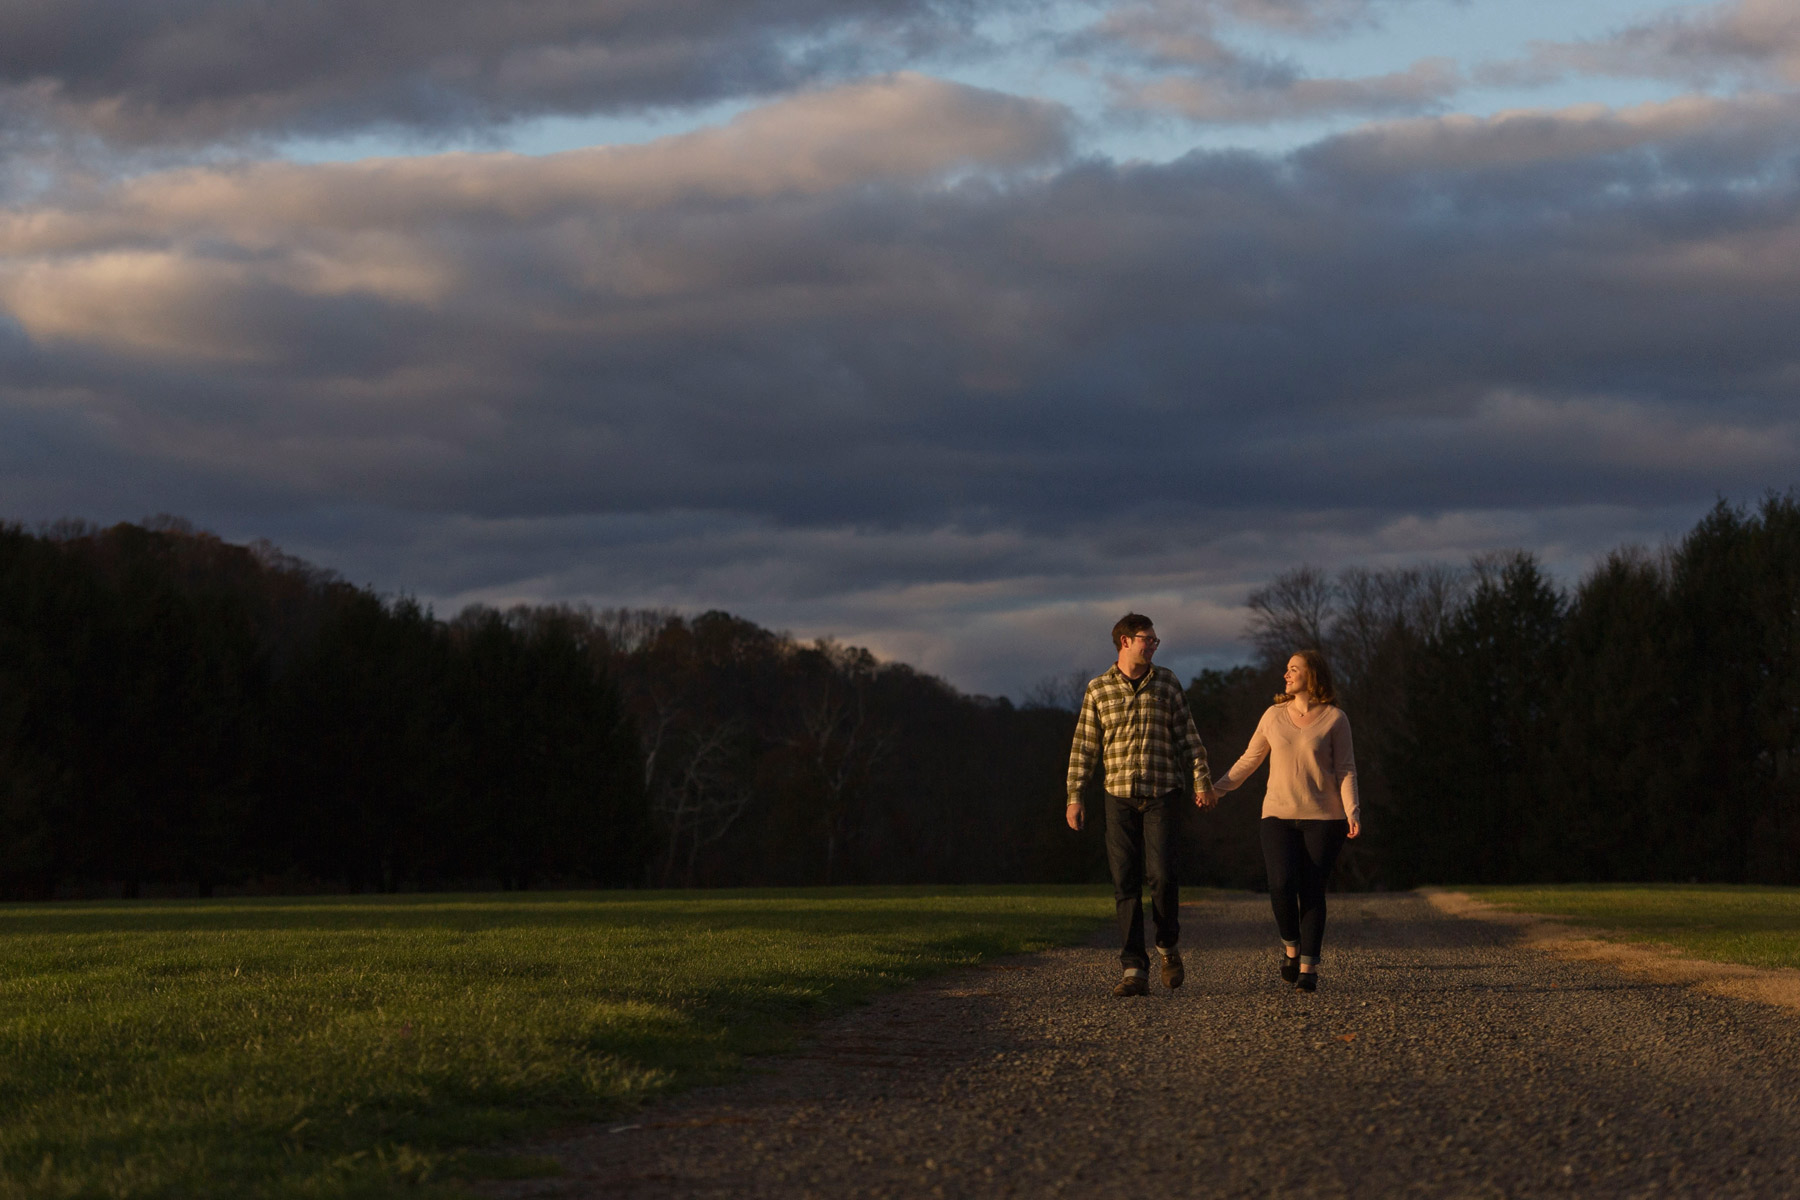 Bucks_county_engagement_session_Tinicum_Park_couple_walks_in_sunset_on_path.JPG